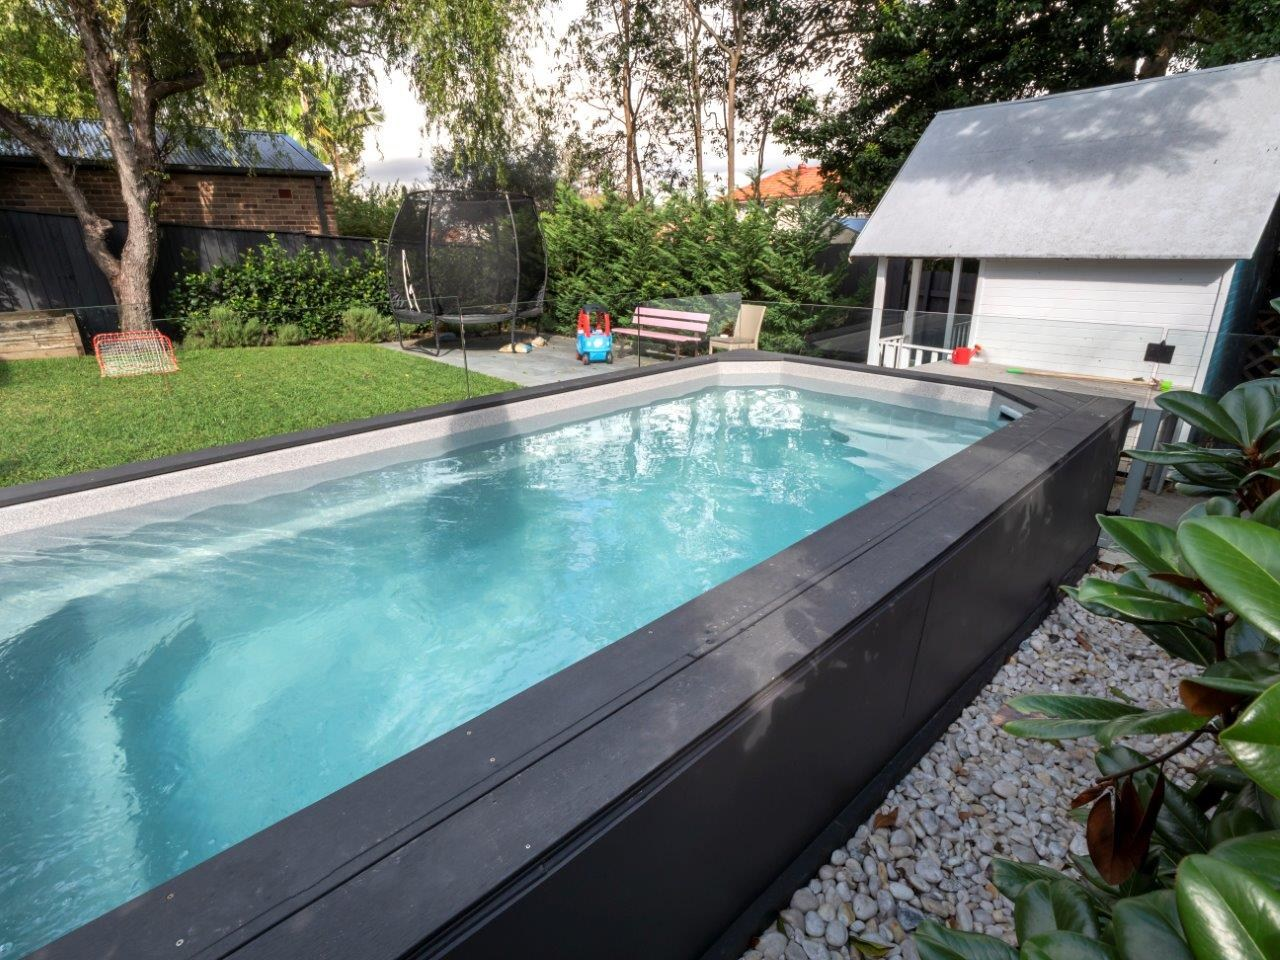 ez plunge pool Relax above ground pool view 2